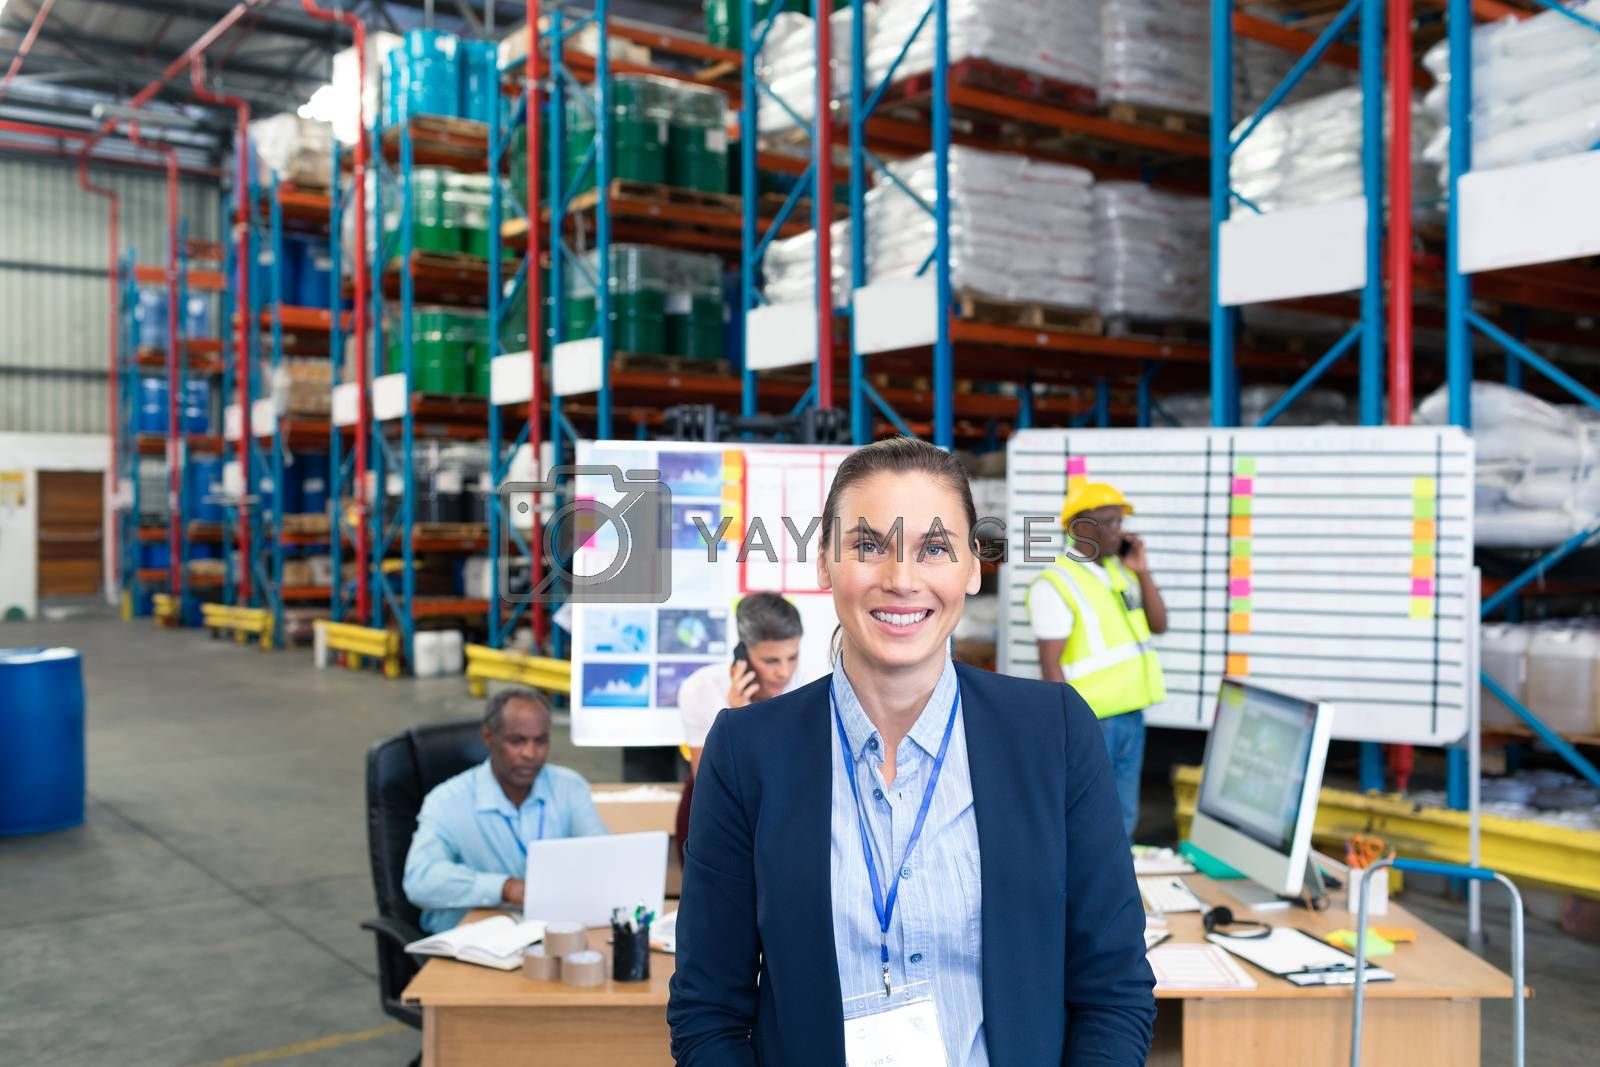 Portrait of happy mature Caucasian female manager looking at camera in warehouse. Diverse colleagues are working in the background. This is a freight transportation and distribution warehouse. Industrial and industrial workers concept